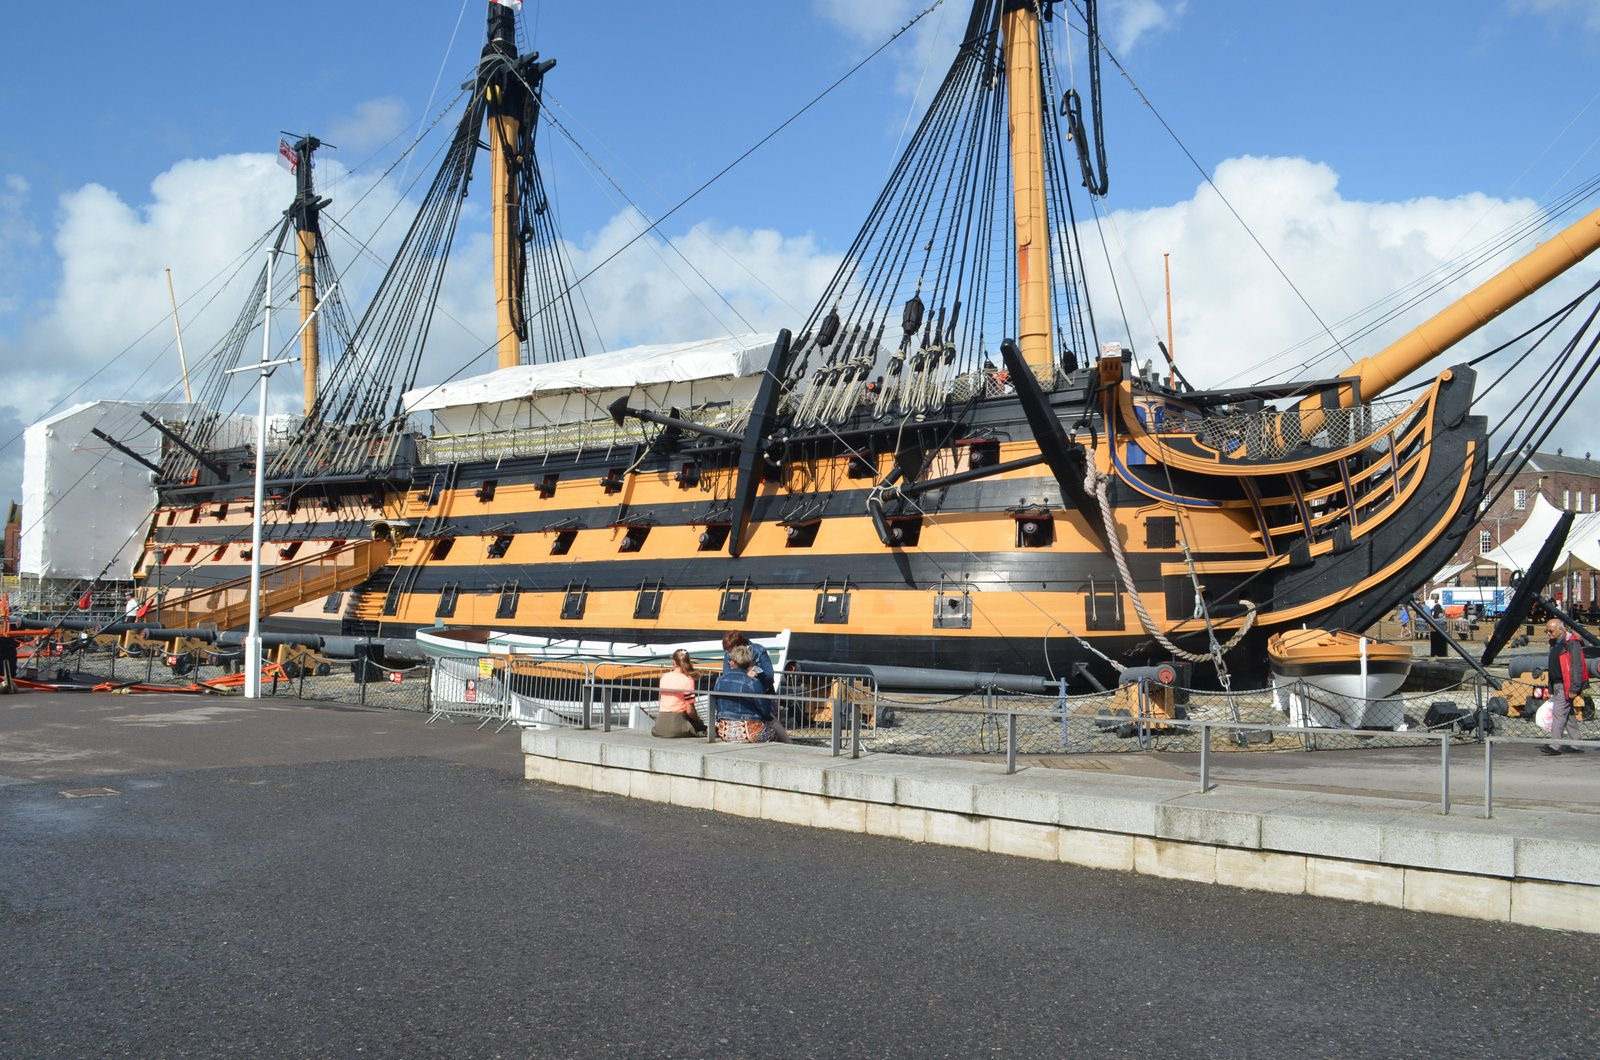 Japanese Interior Hms Victory